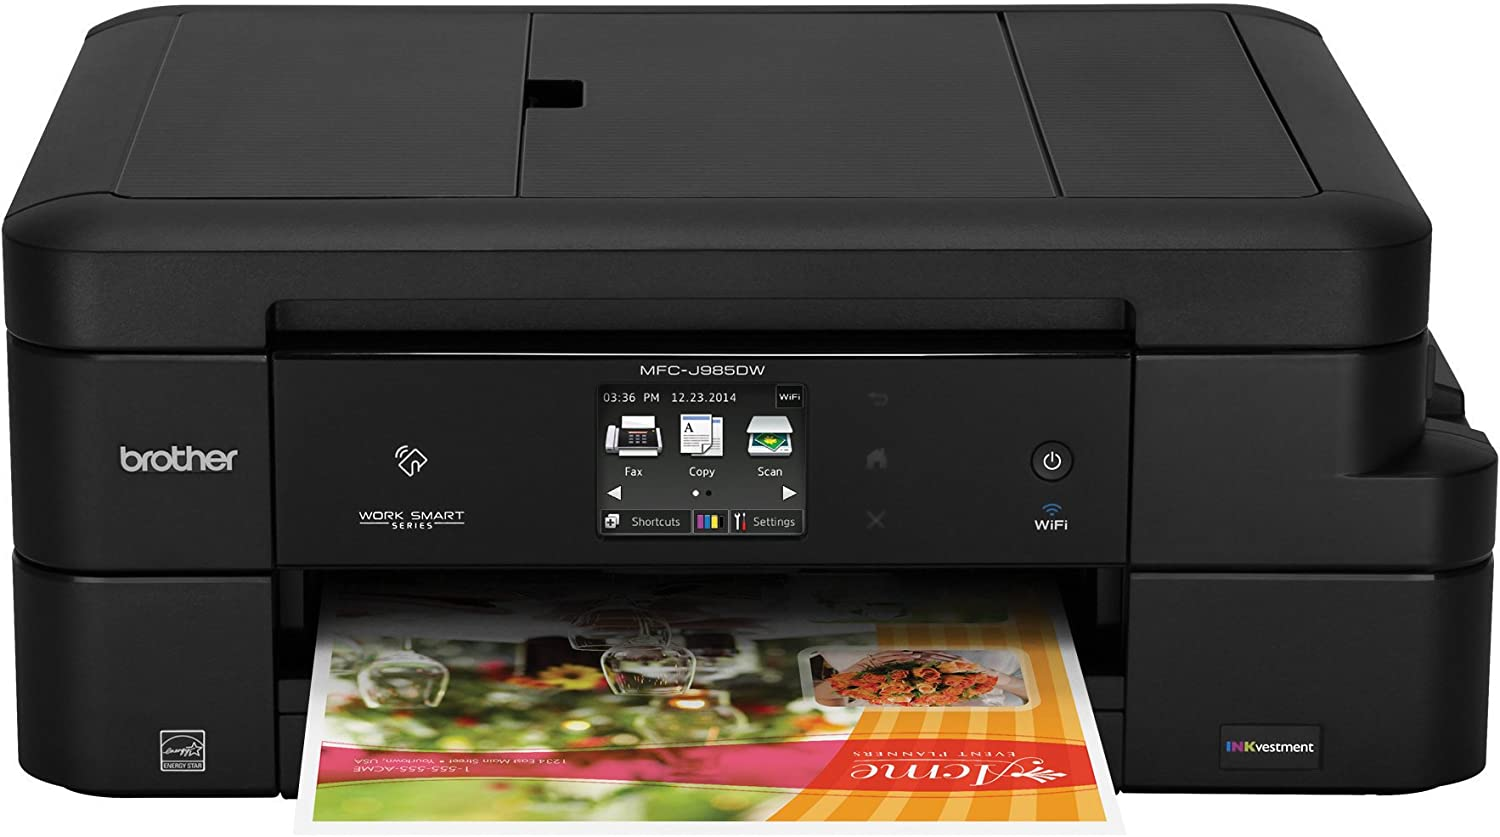 Brother Inkjet Printer, MFC-J985DW, Duplex Printing, Wireless Connectivity, Cost-Effective Color Printer, Business Capable Features, Amazon Dash ...